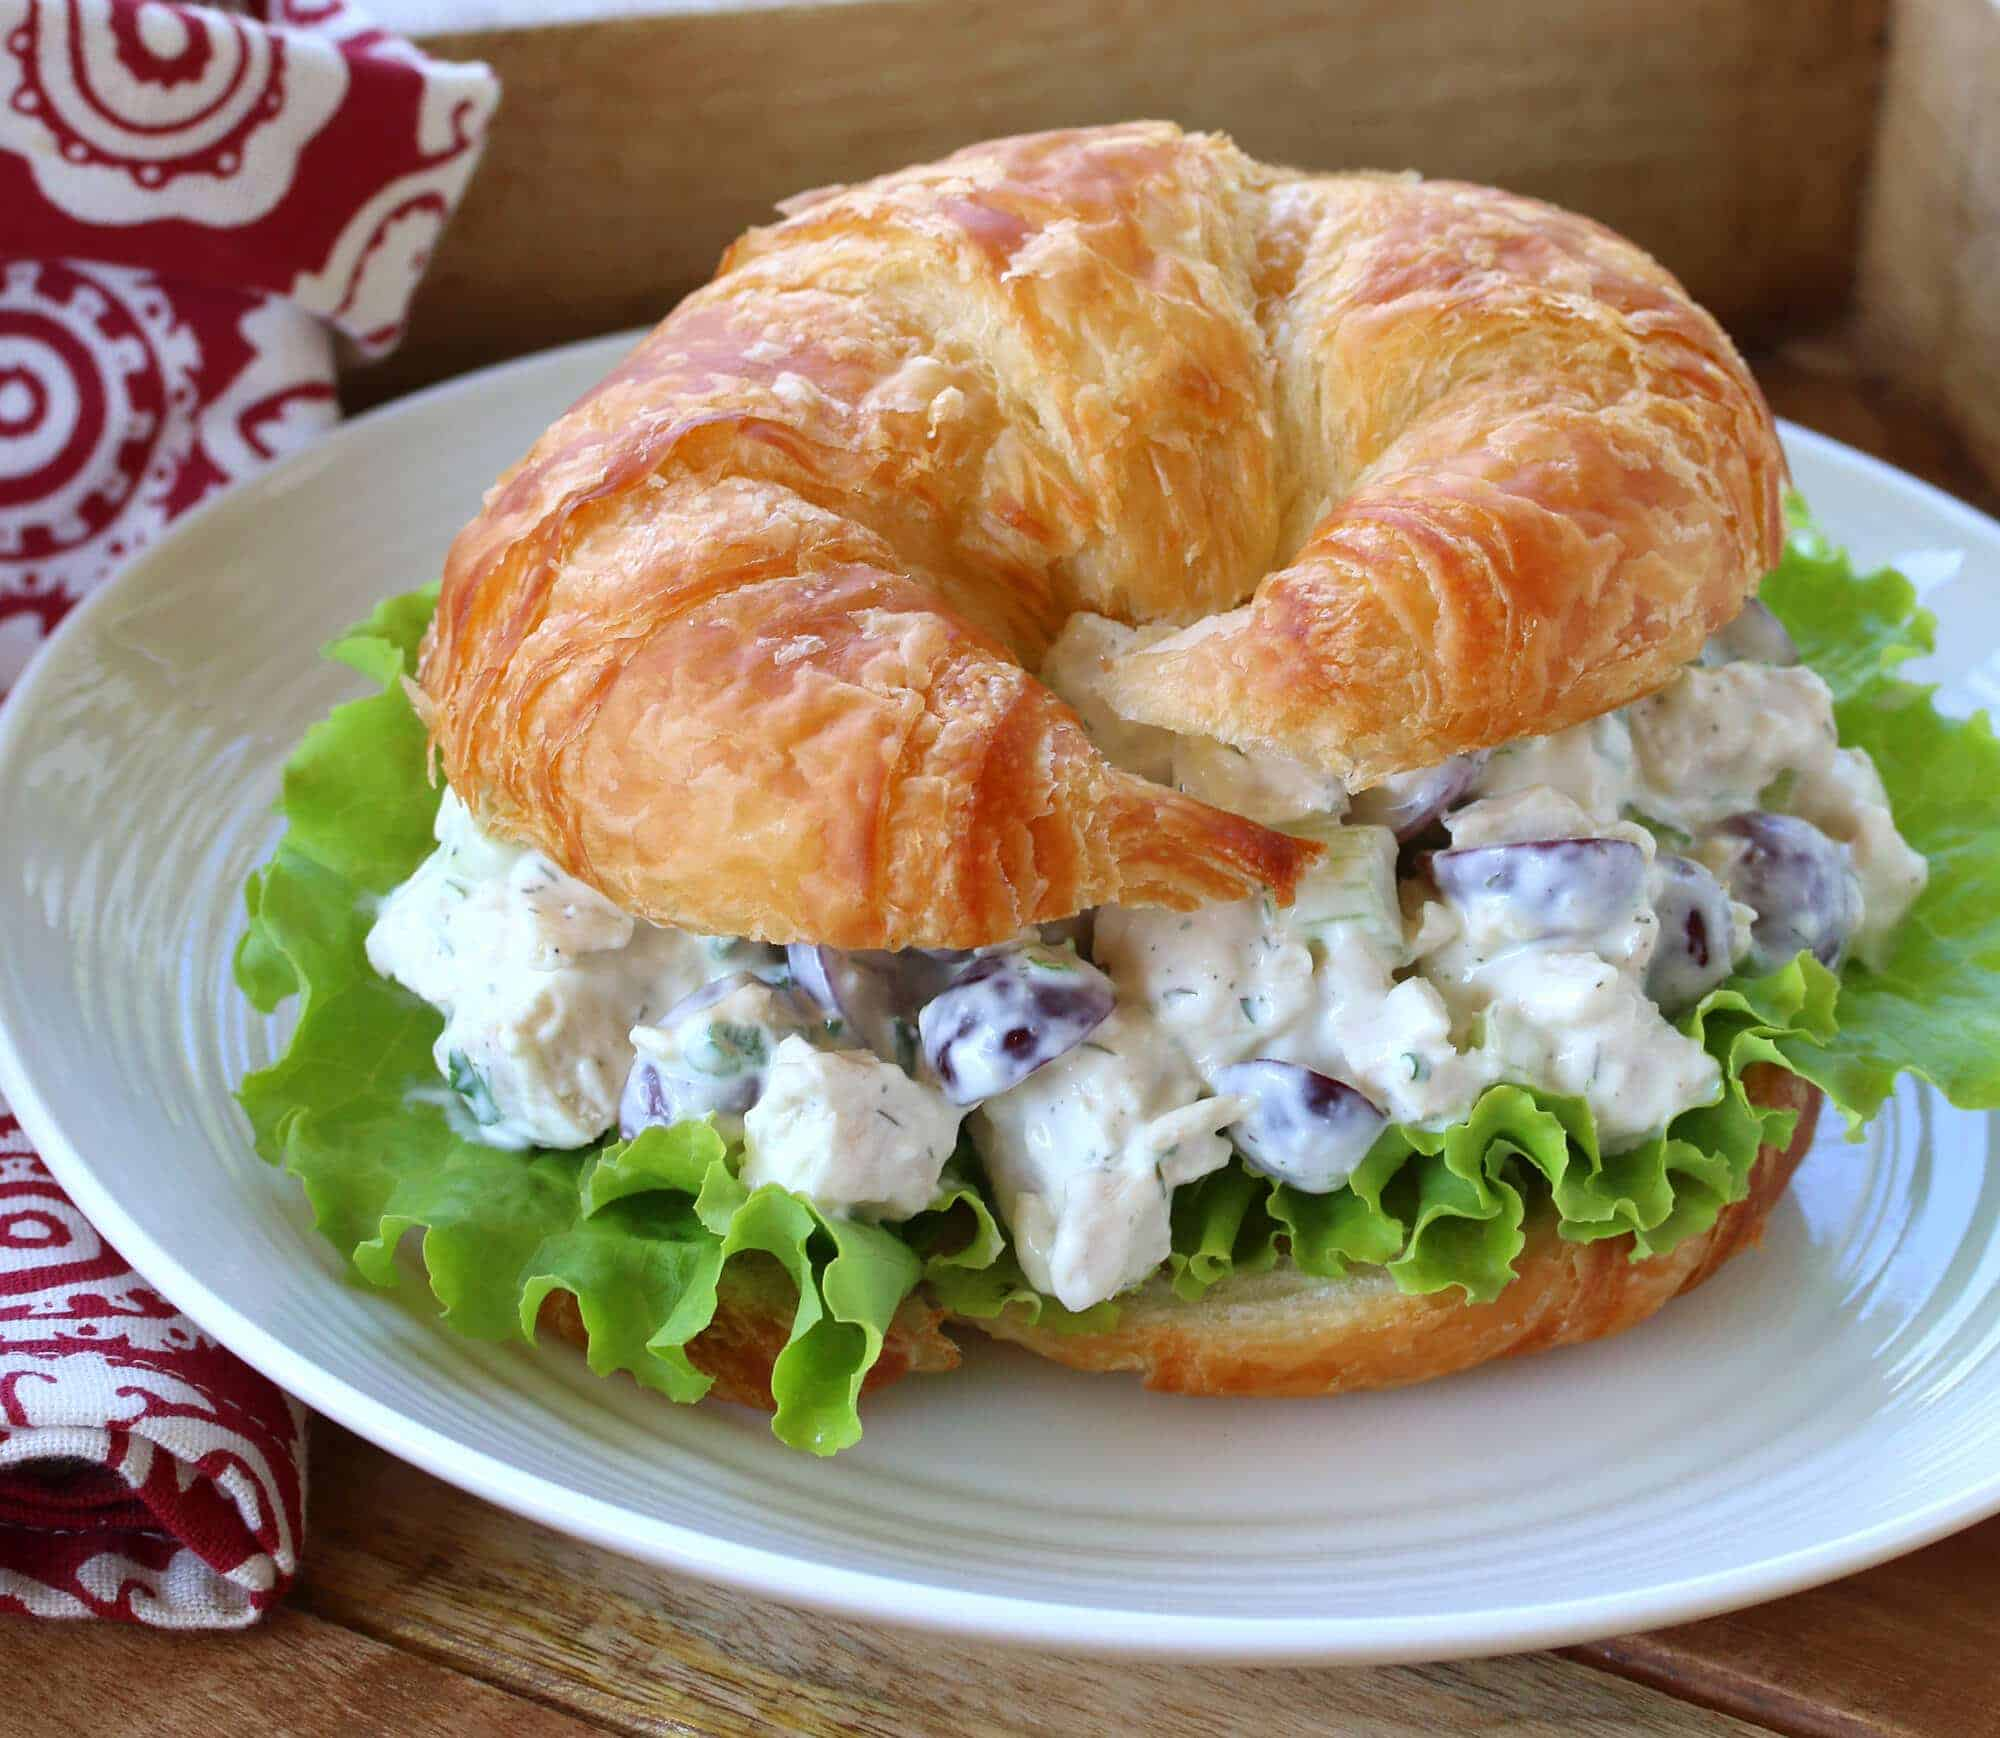 chicken salad recipe best croissants sandwiches deli style